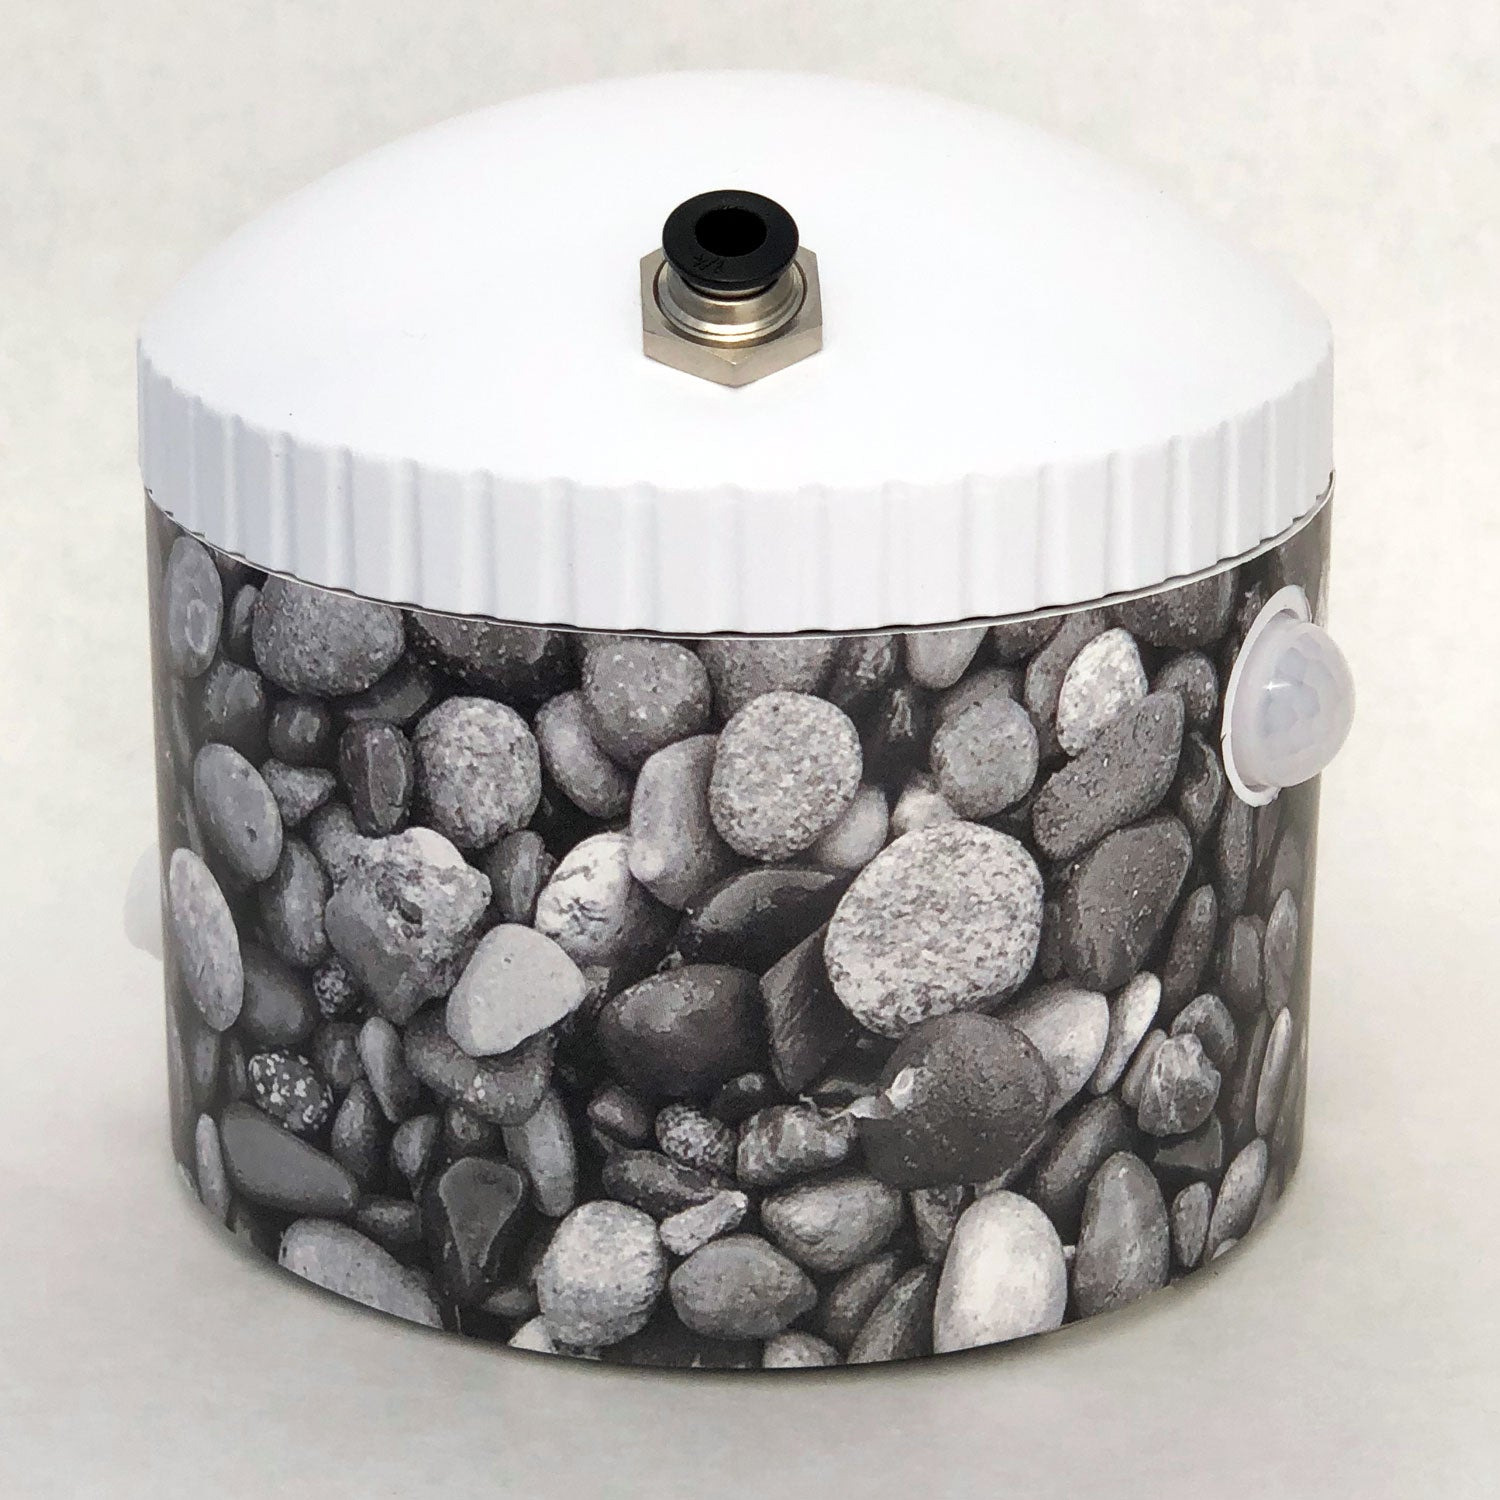 DecoWrap - Pebbles - Black and white - DW-0002